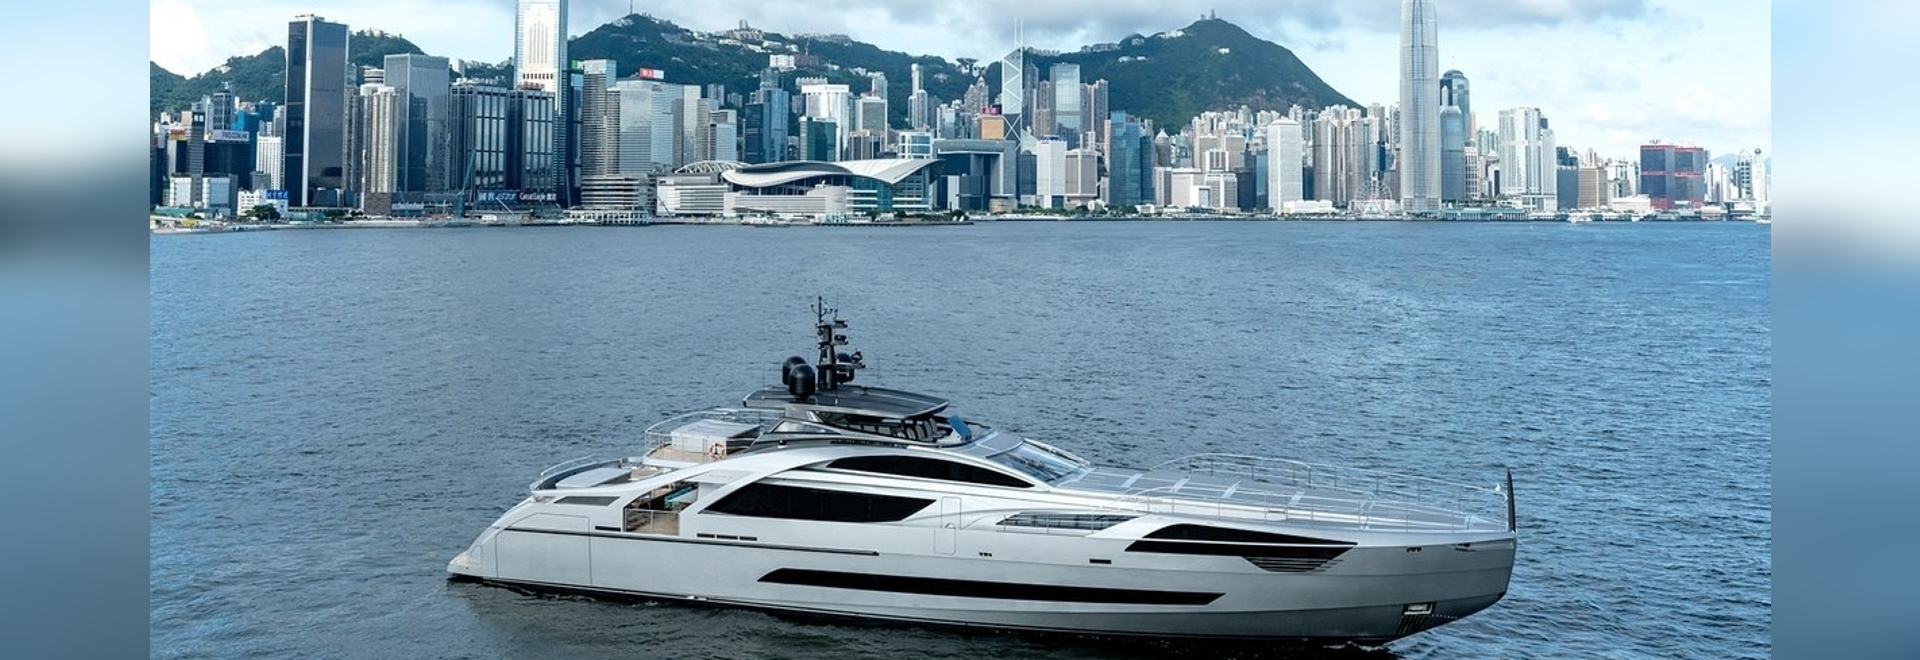 Insights into Pershing's first all-aluminium superyacht